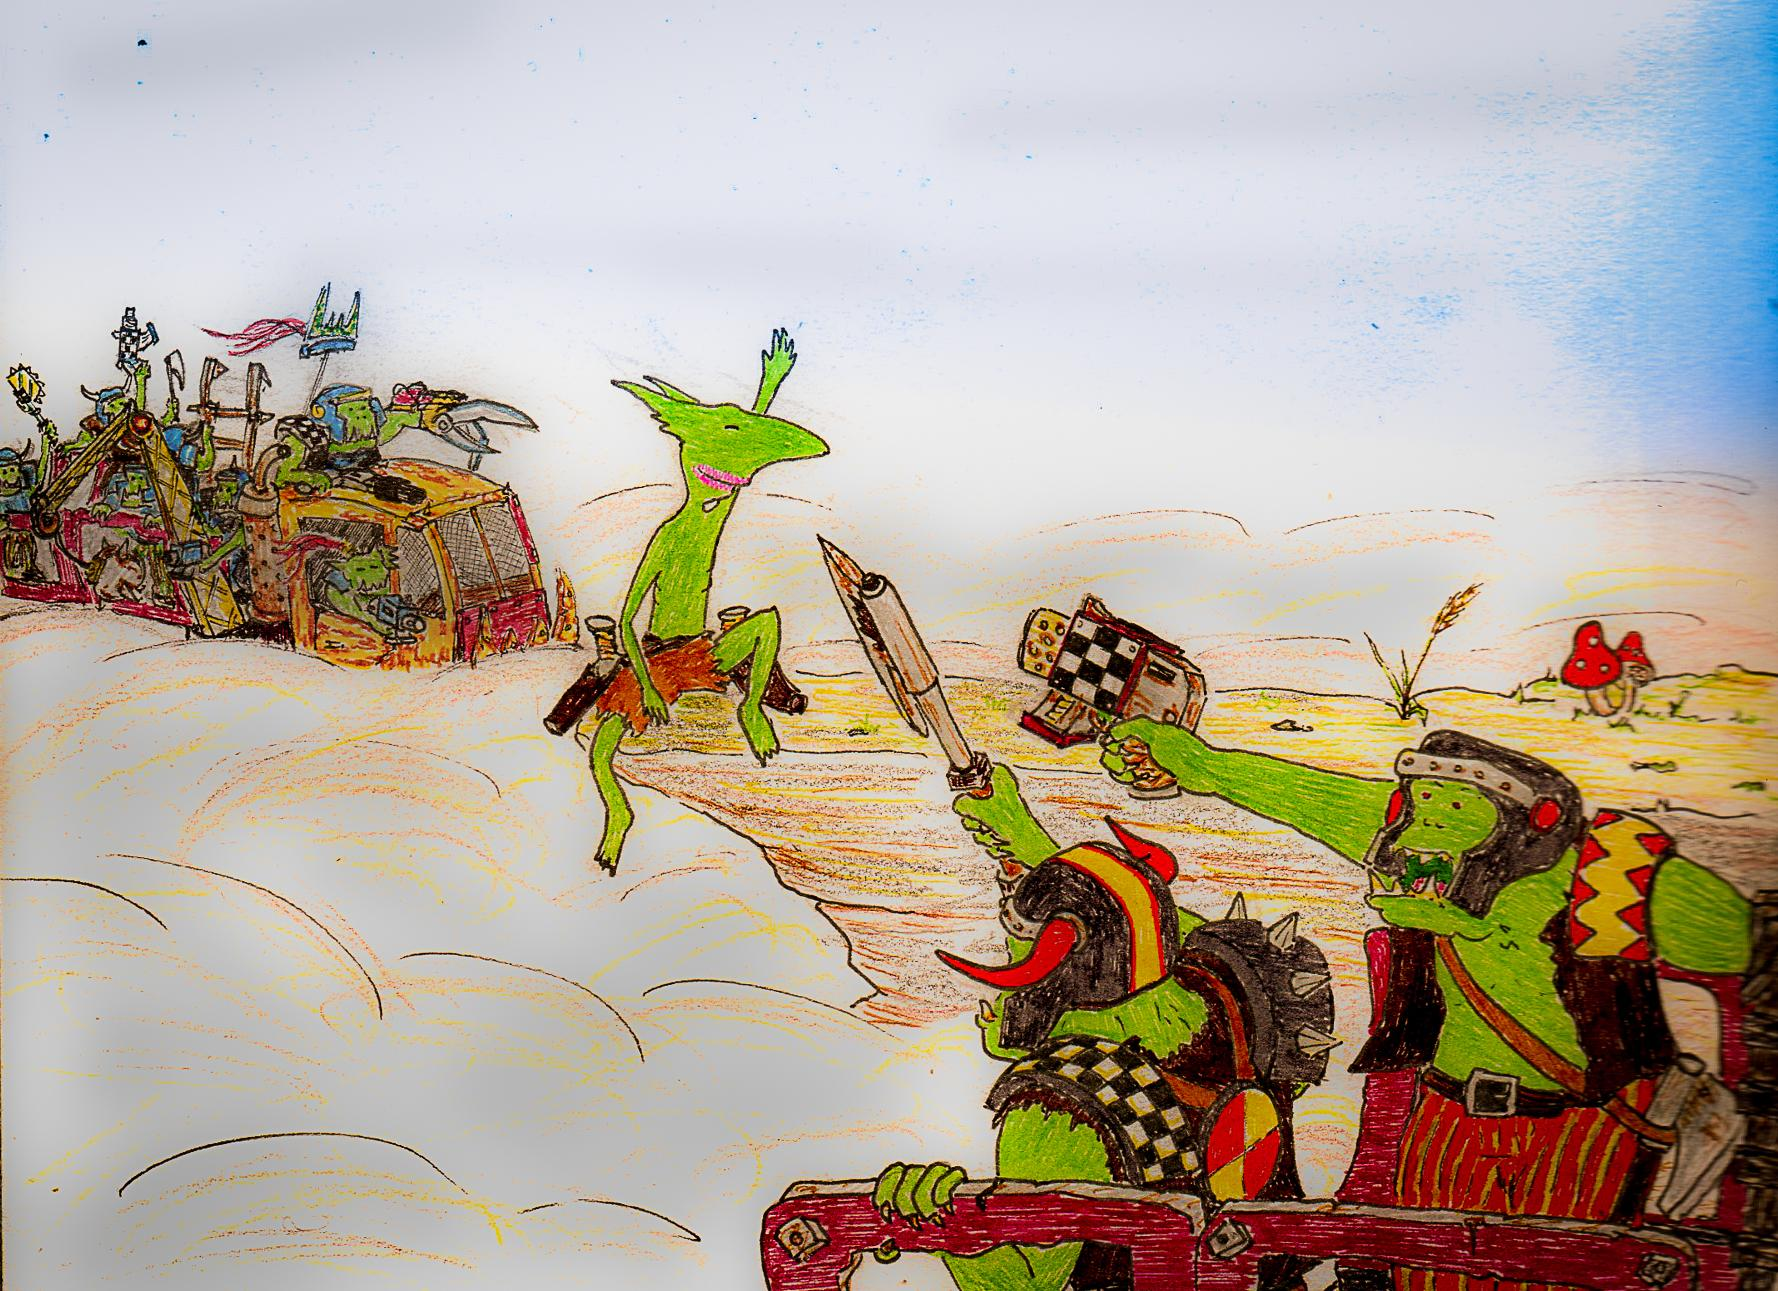 Artwork, Cartoon, Comedy, Comic, Drawing, Fiction, Graphic, Grots, Humour, Illustration, Ink, Orks, Sketch, Warhammer 40,000